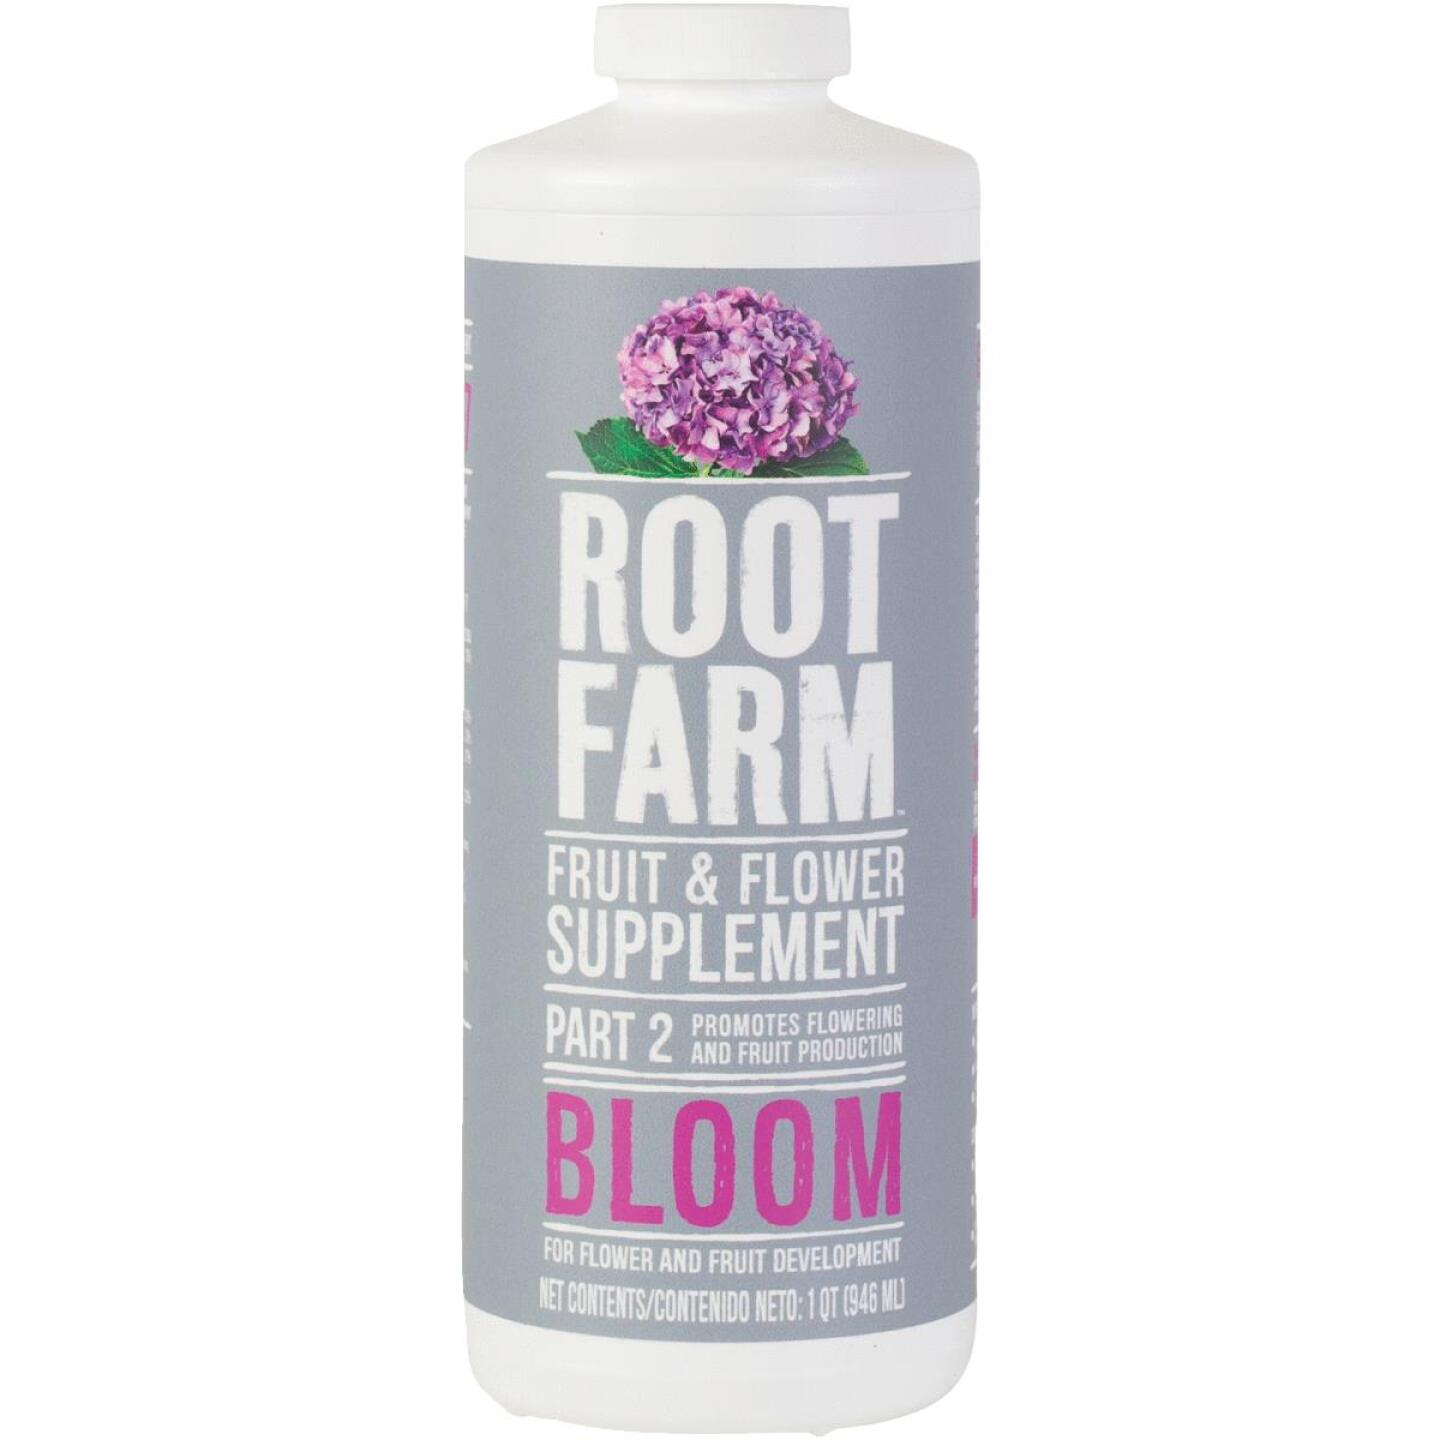 Root Farm 1 Qt. Concentrated Liquid Fruit & Flower Supplement Nutrient Part 2 Image 1